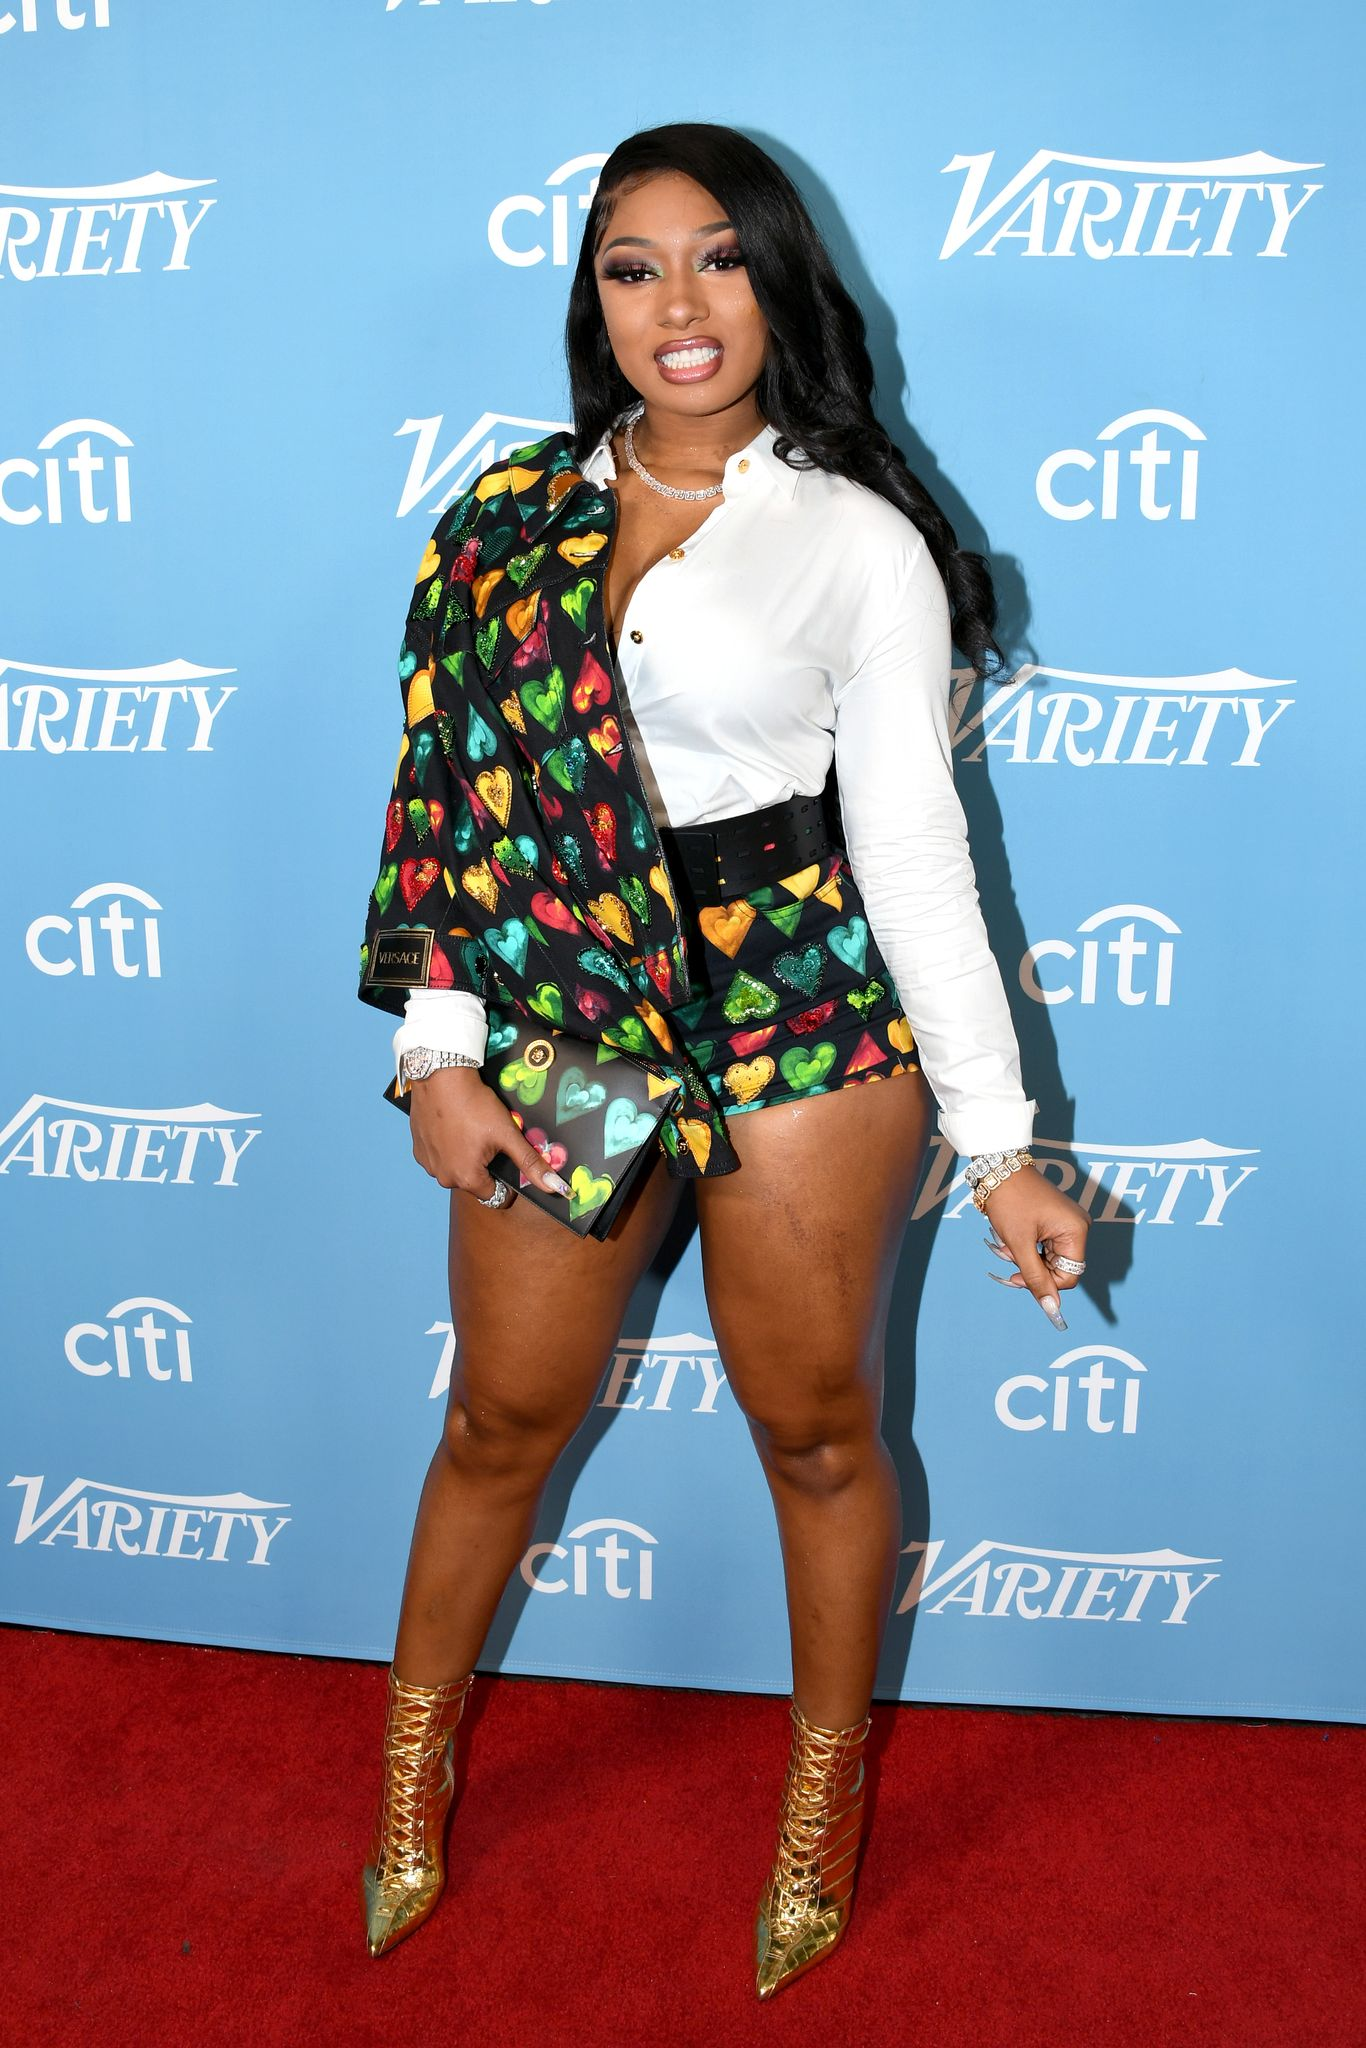 Rapper Megan Stallion at Variety's Hitmakers on December 07, 2019 in California.   Photo: Getty Images